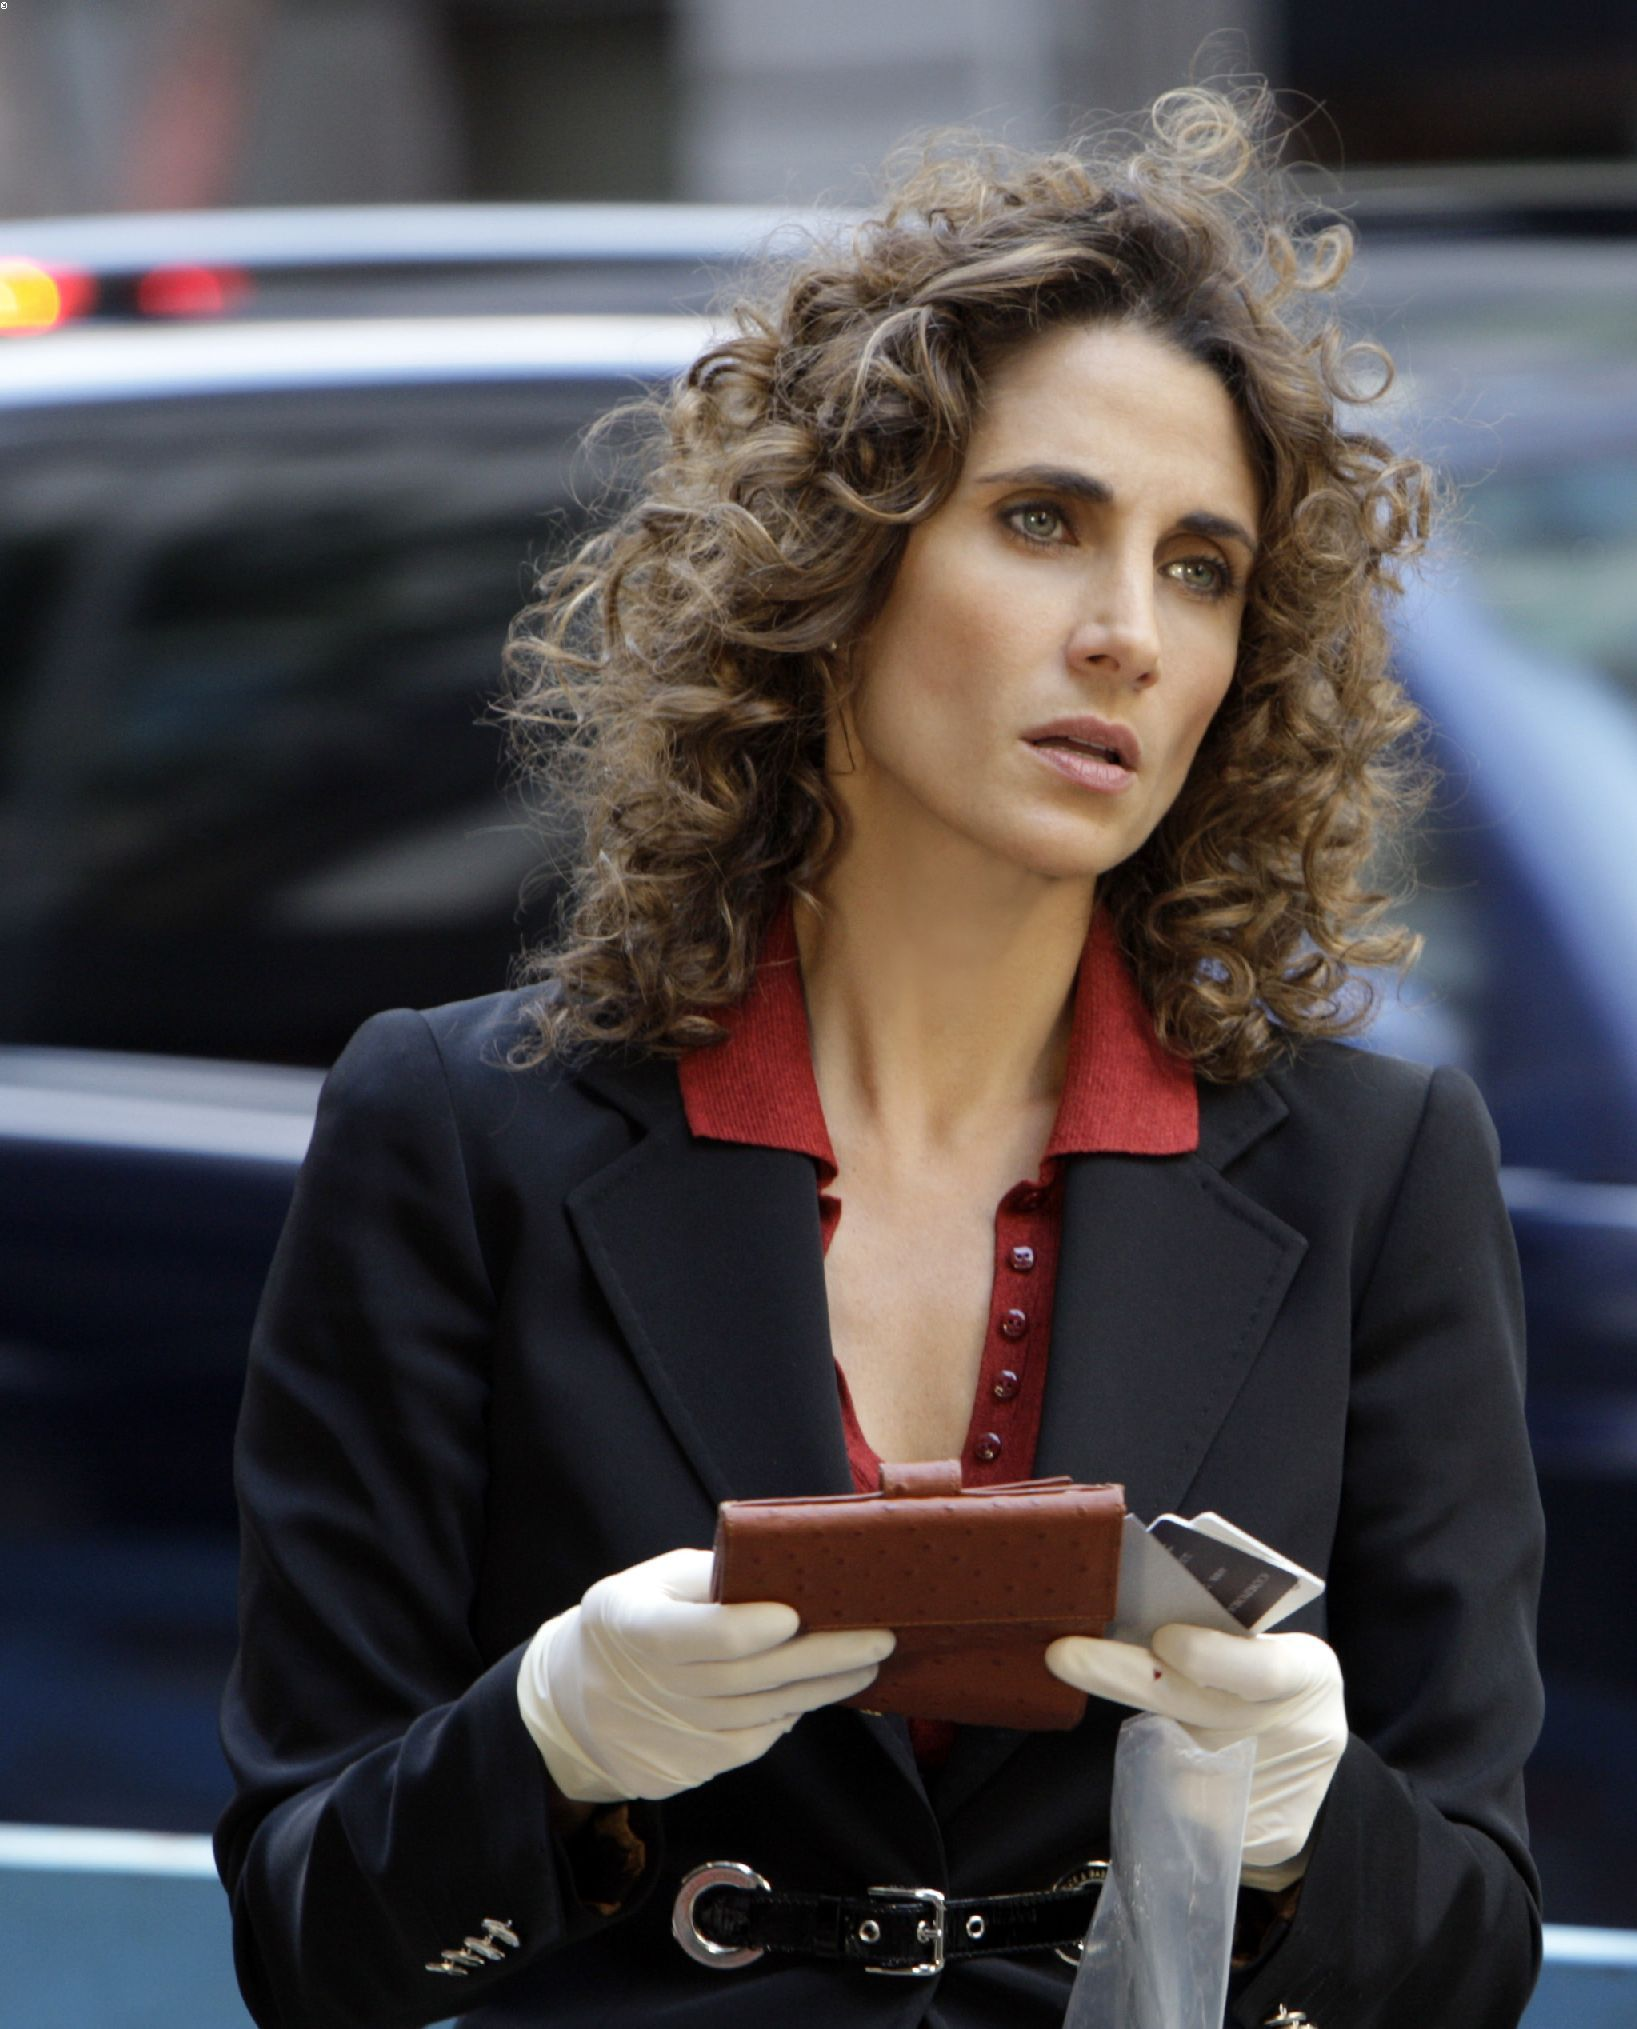 CSI: NY - Episode 5.04 - Sex Lies And Silicone - Promotional các bức ảnh